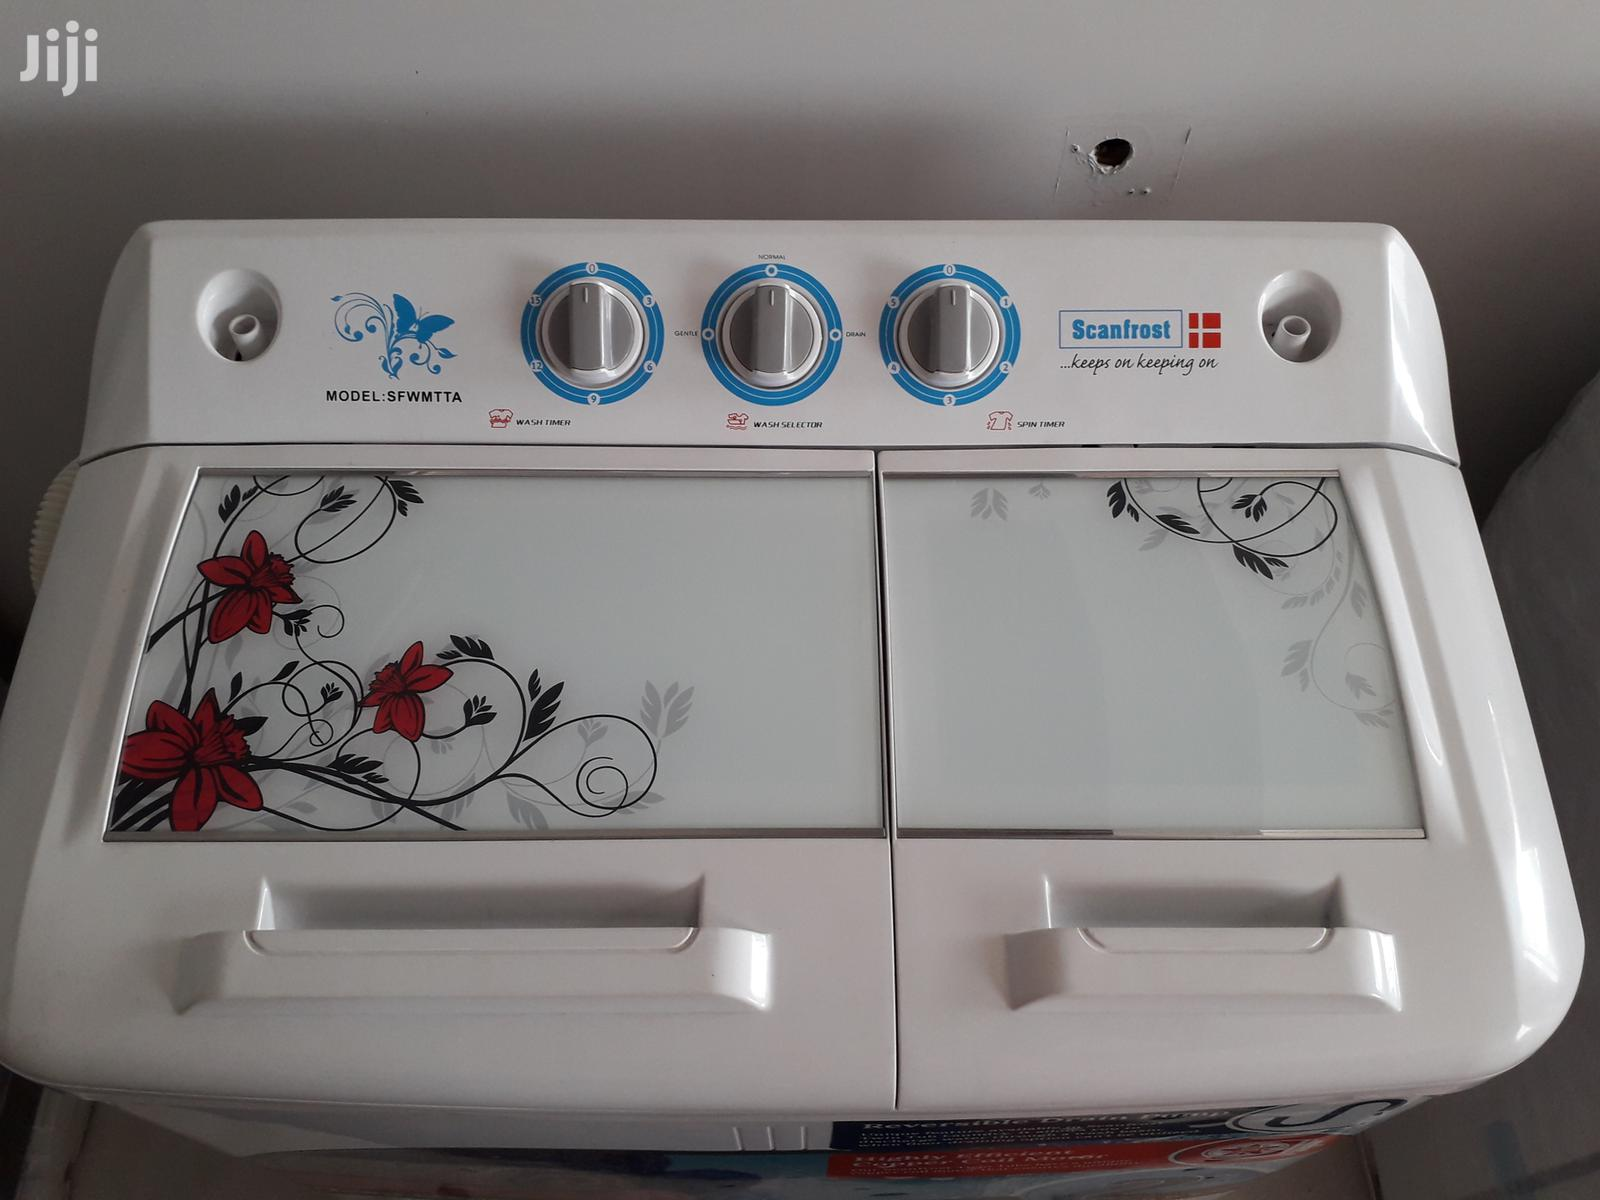 Washing Machine | Home Appliances for sale in Ibadan, Oyo State, Nigeria